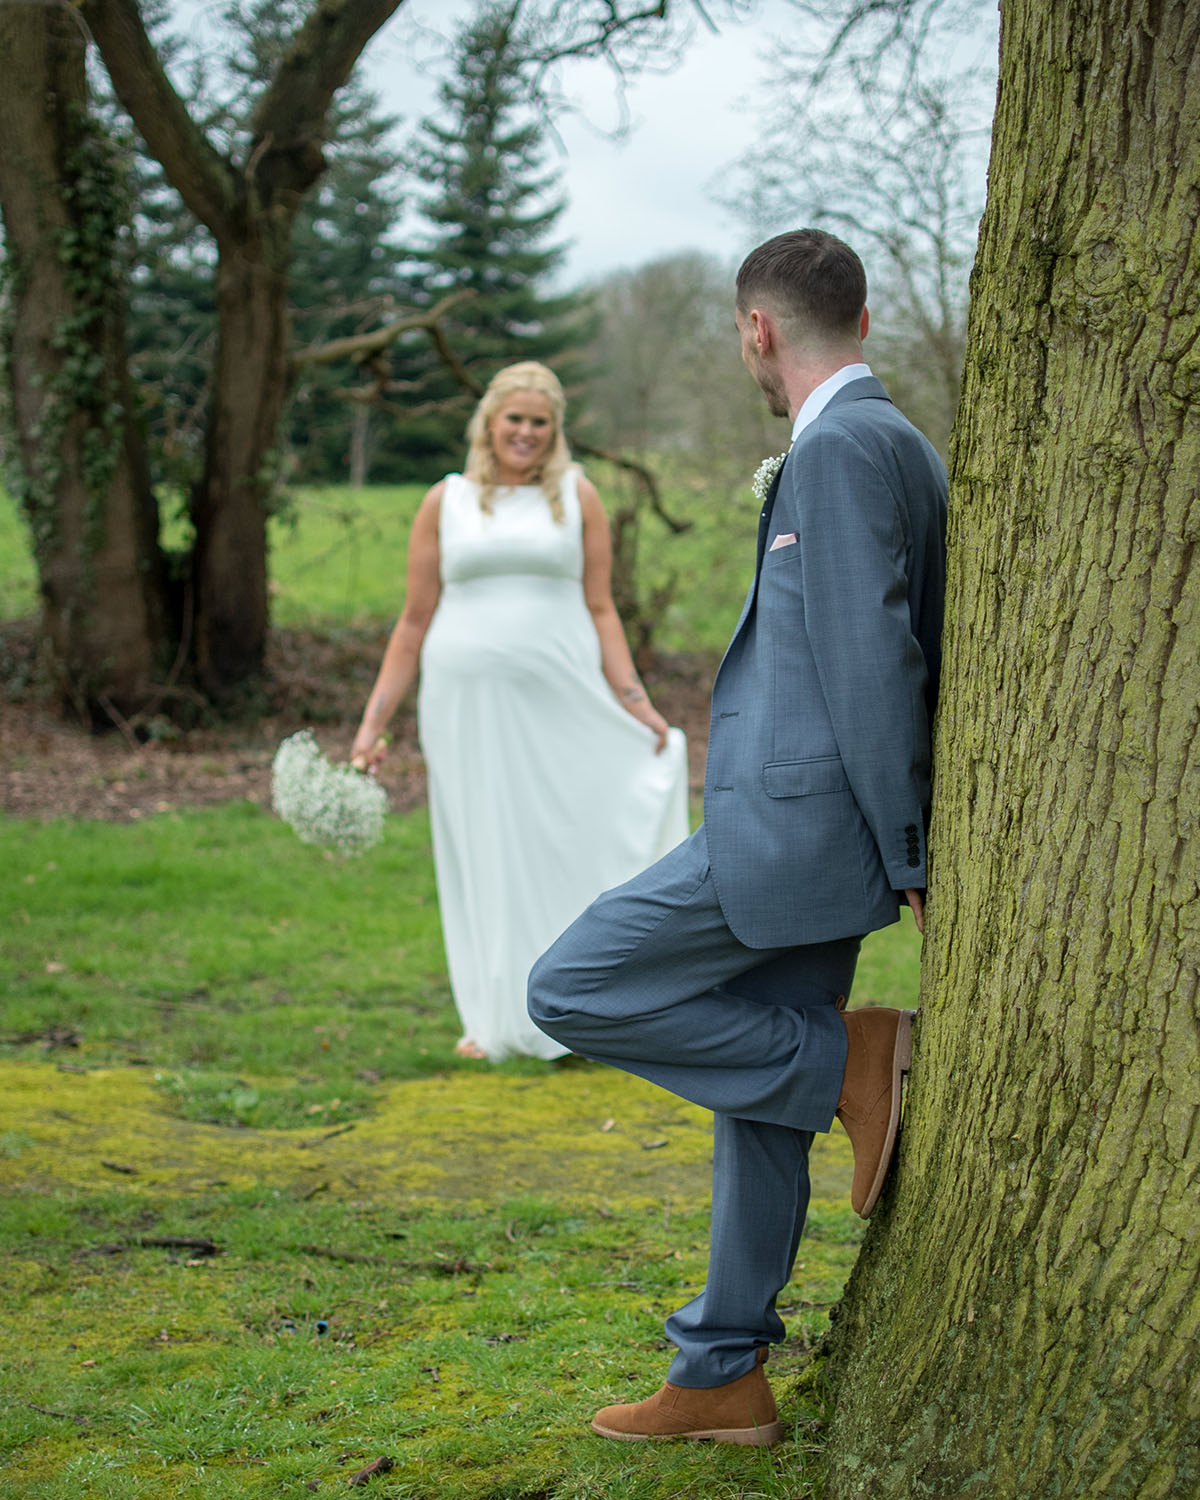 NATALIE & LUKE - APRIL, 2018| WEDDINGS  Dave was absolutely amazing on our wedding day. Considering we only met him on the morning of our wedding due to unforeseen circumstances he was perfect we couldn't of asked for anything more. He made us feel very comfortable and did exactly what we wanted him to do. We received our photos today and every single one of them is perfect. Thanks for saving the day and doing what you did.